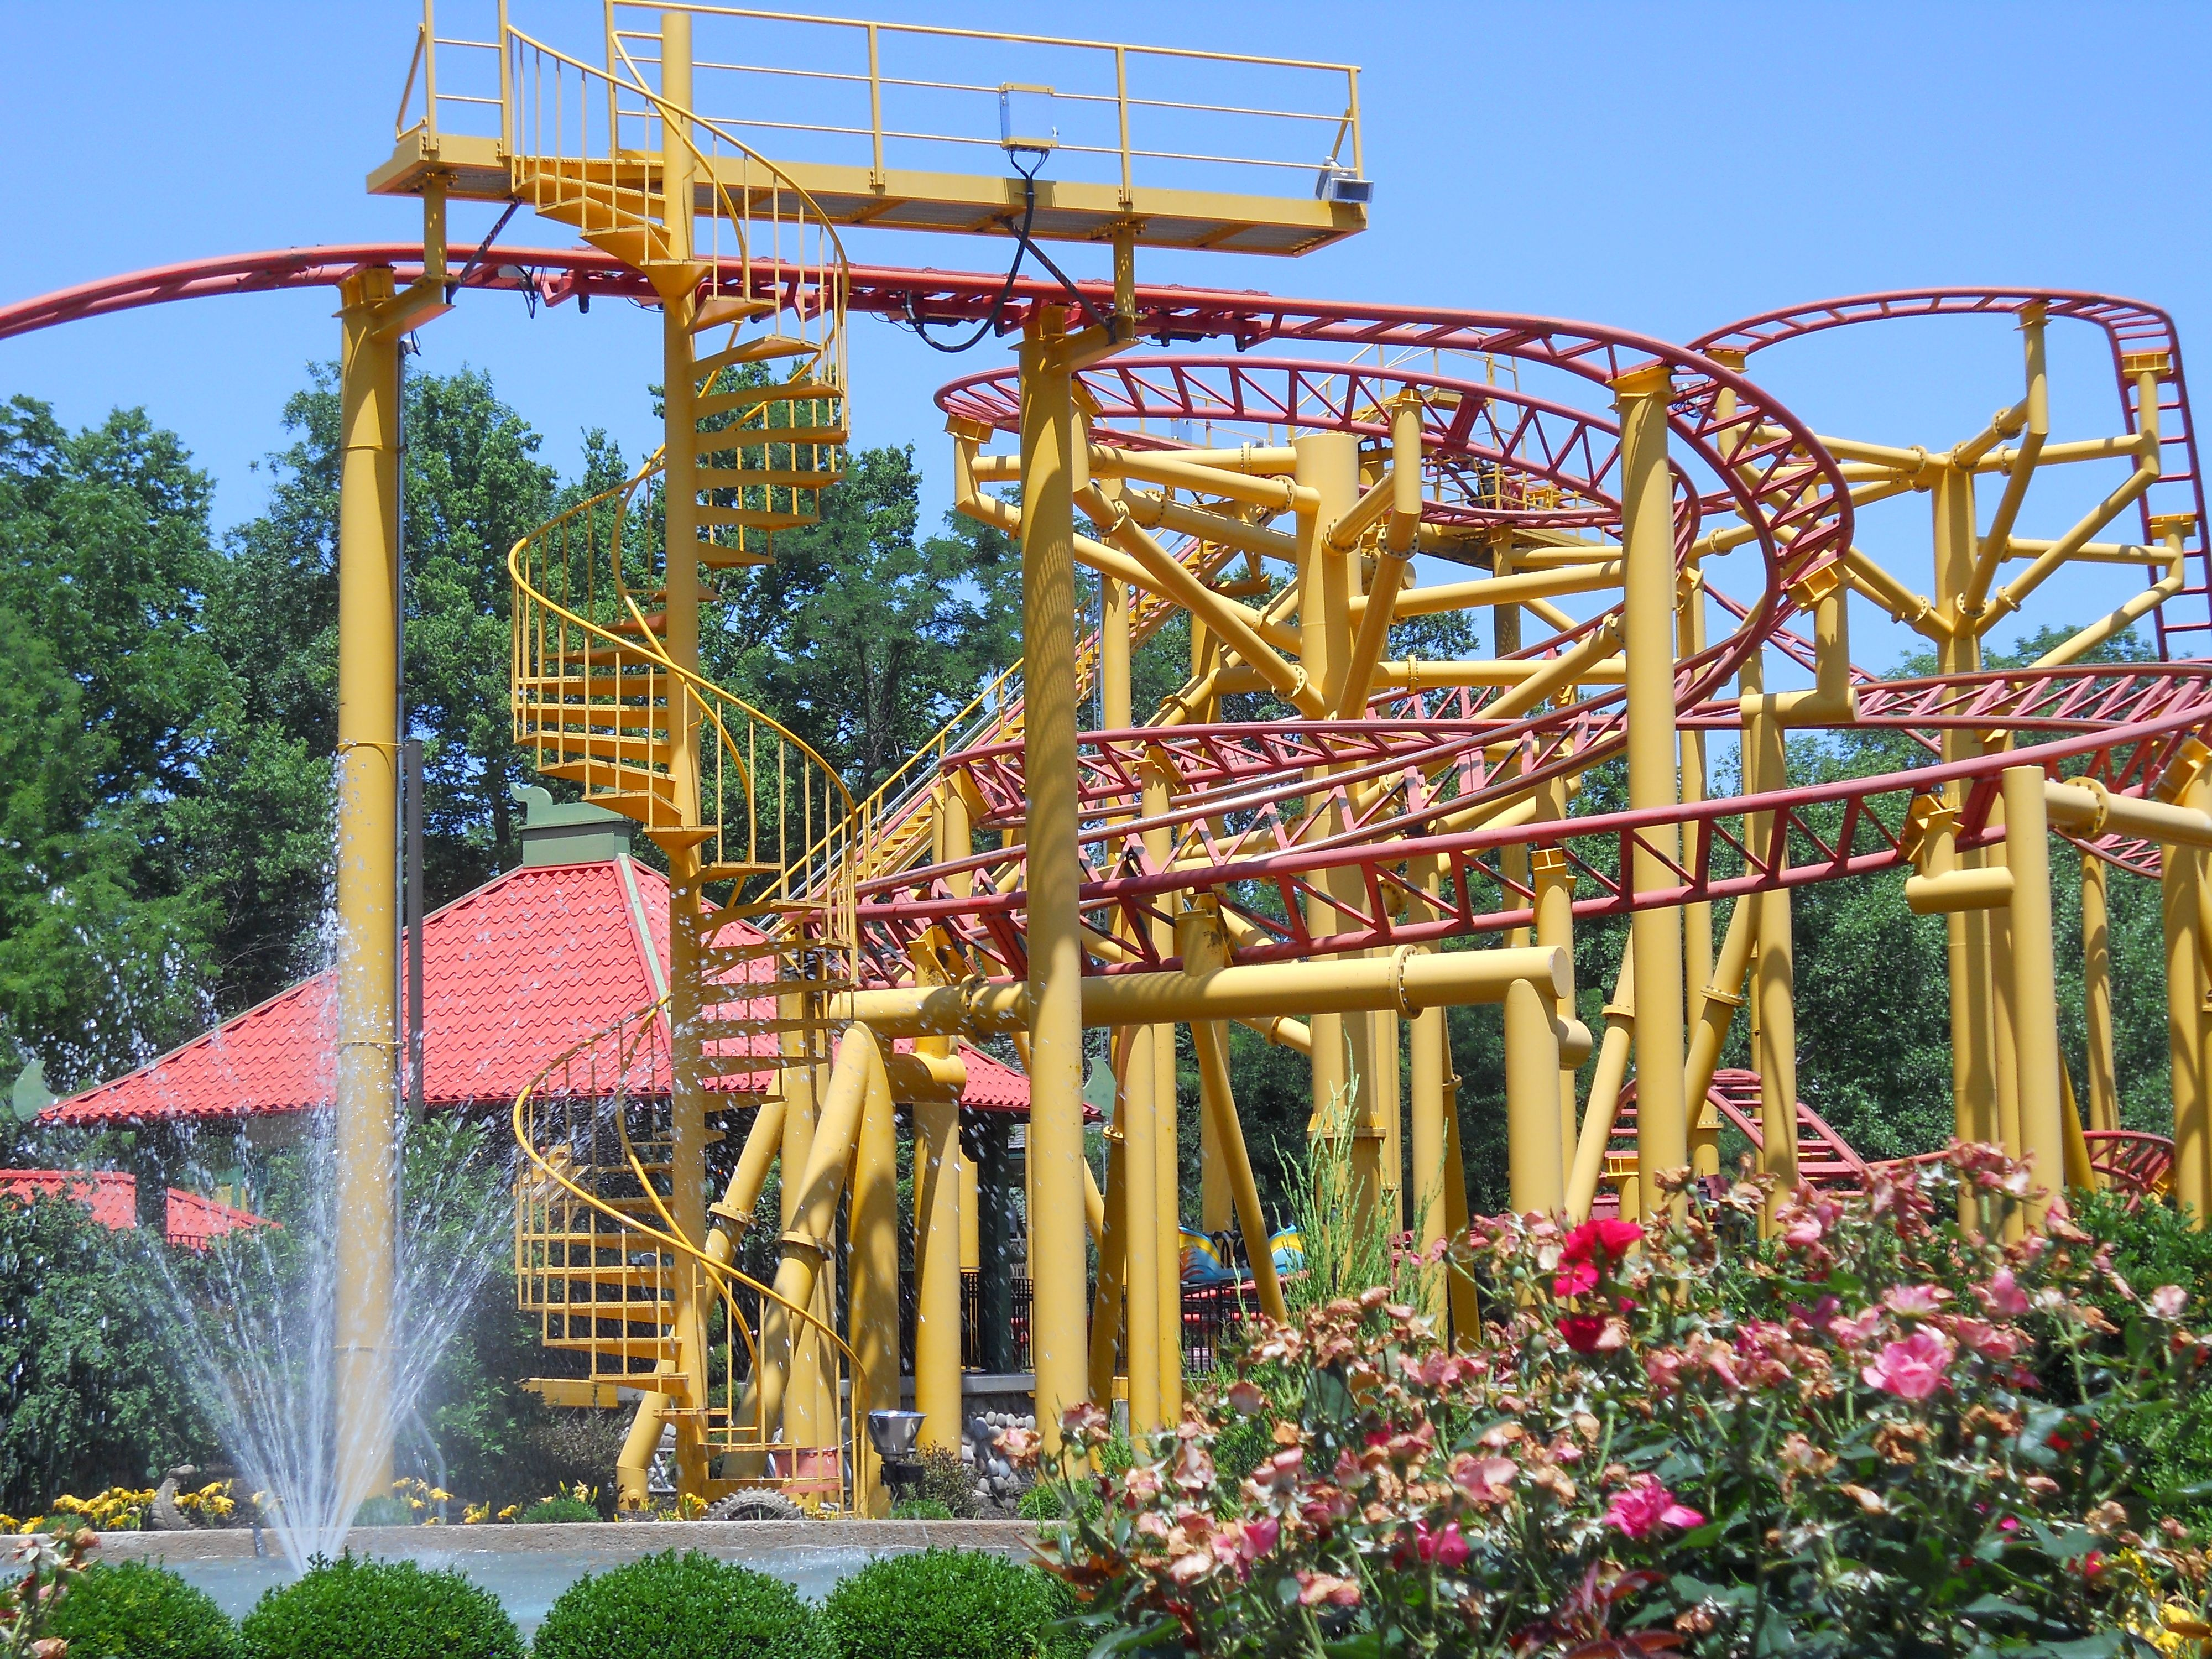 Pin By Judson Workman On Rollercoasters Check Worlds Of Fun Ocean Fun Kansas City